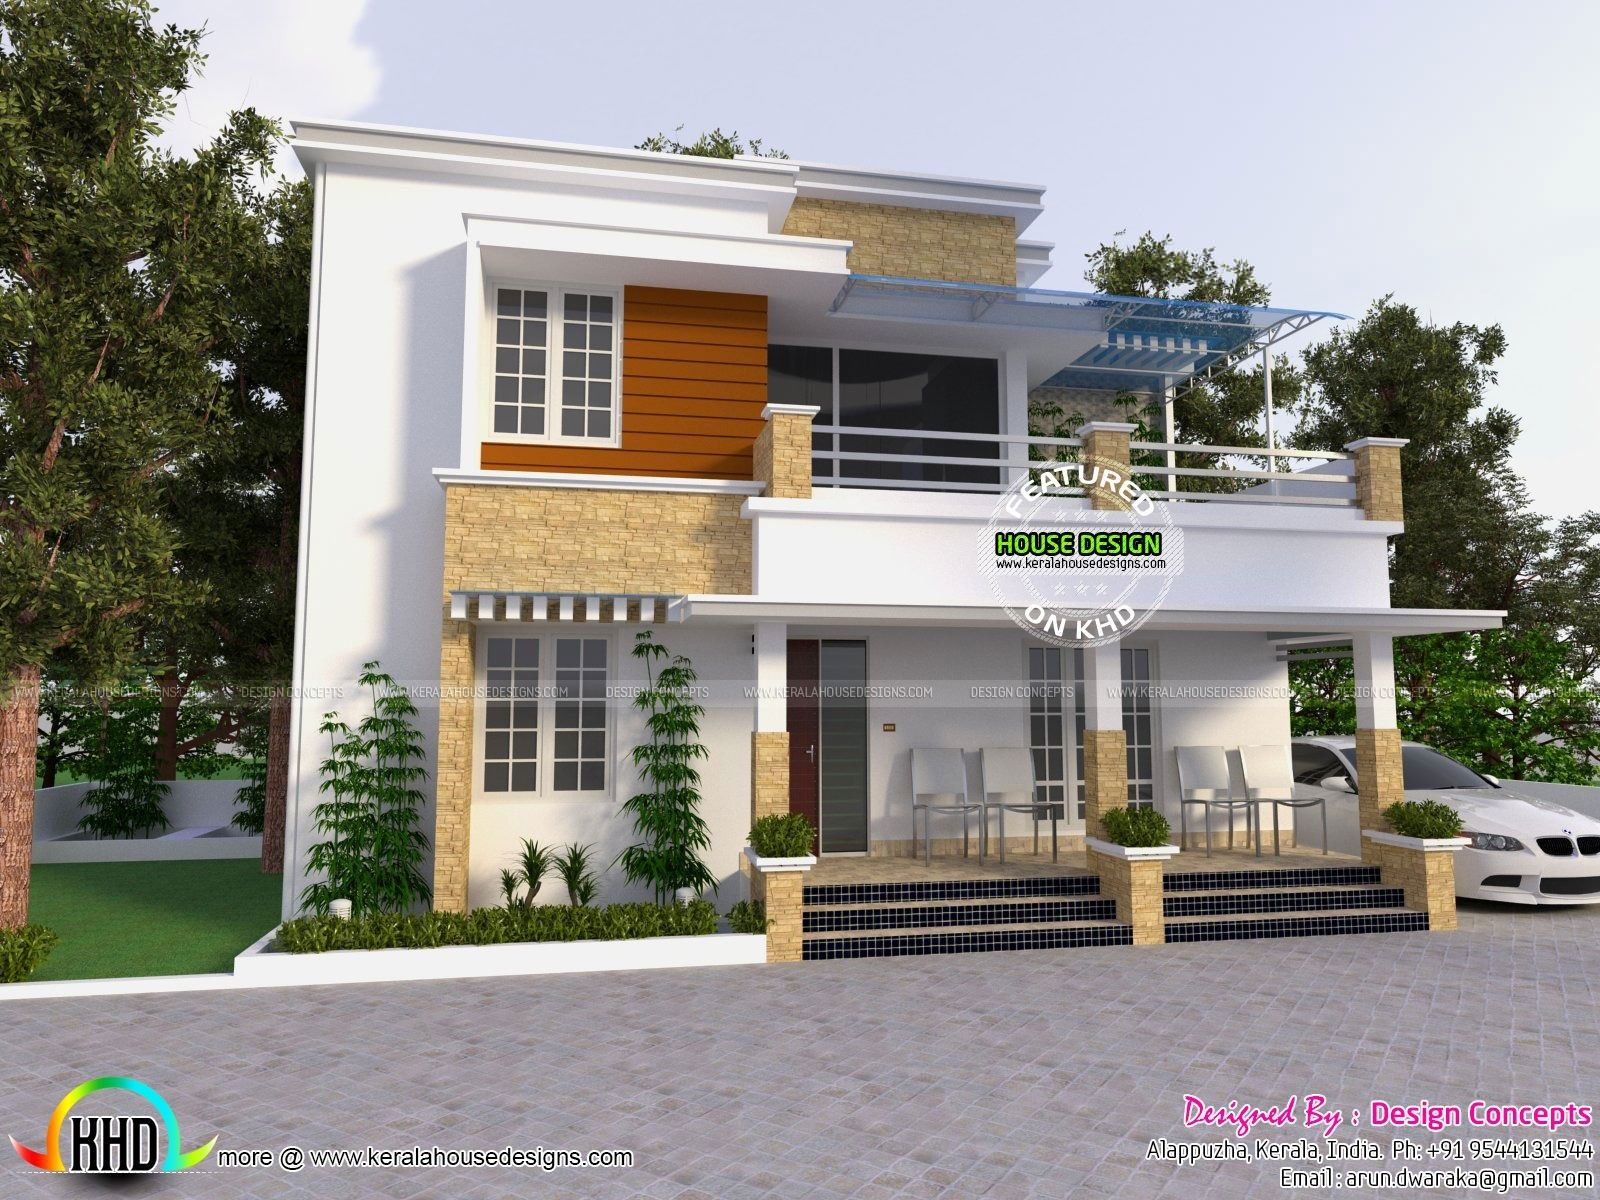 Are you looking for home design concepts if so this board is perfect also pin by stackedstonetile on house rh pinterest